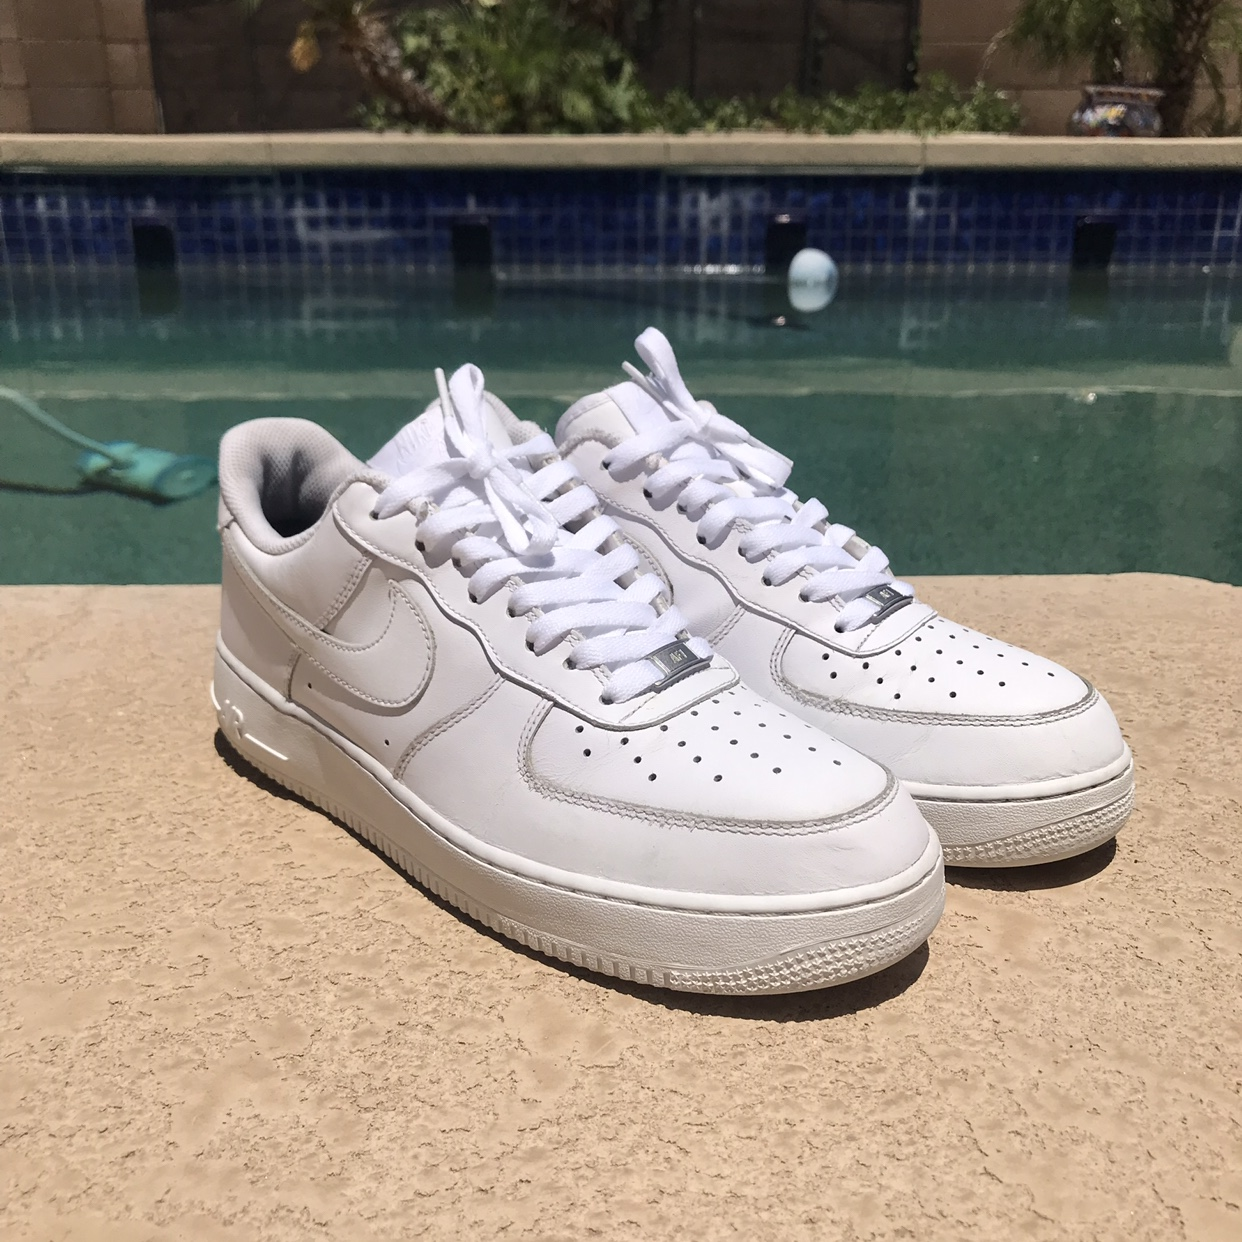 Nike Air Force 1 Low Triple White •Size 10.5 in MENS... - Depop